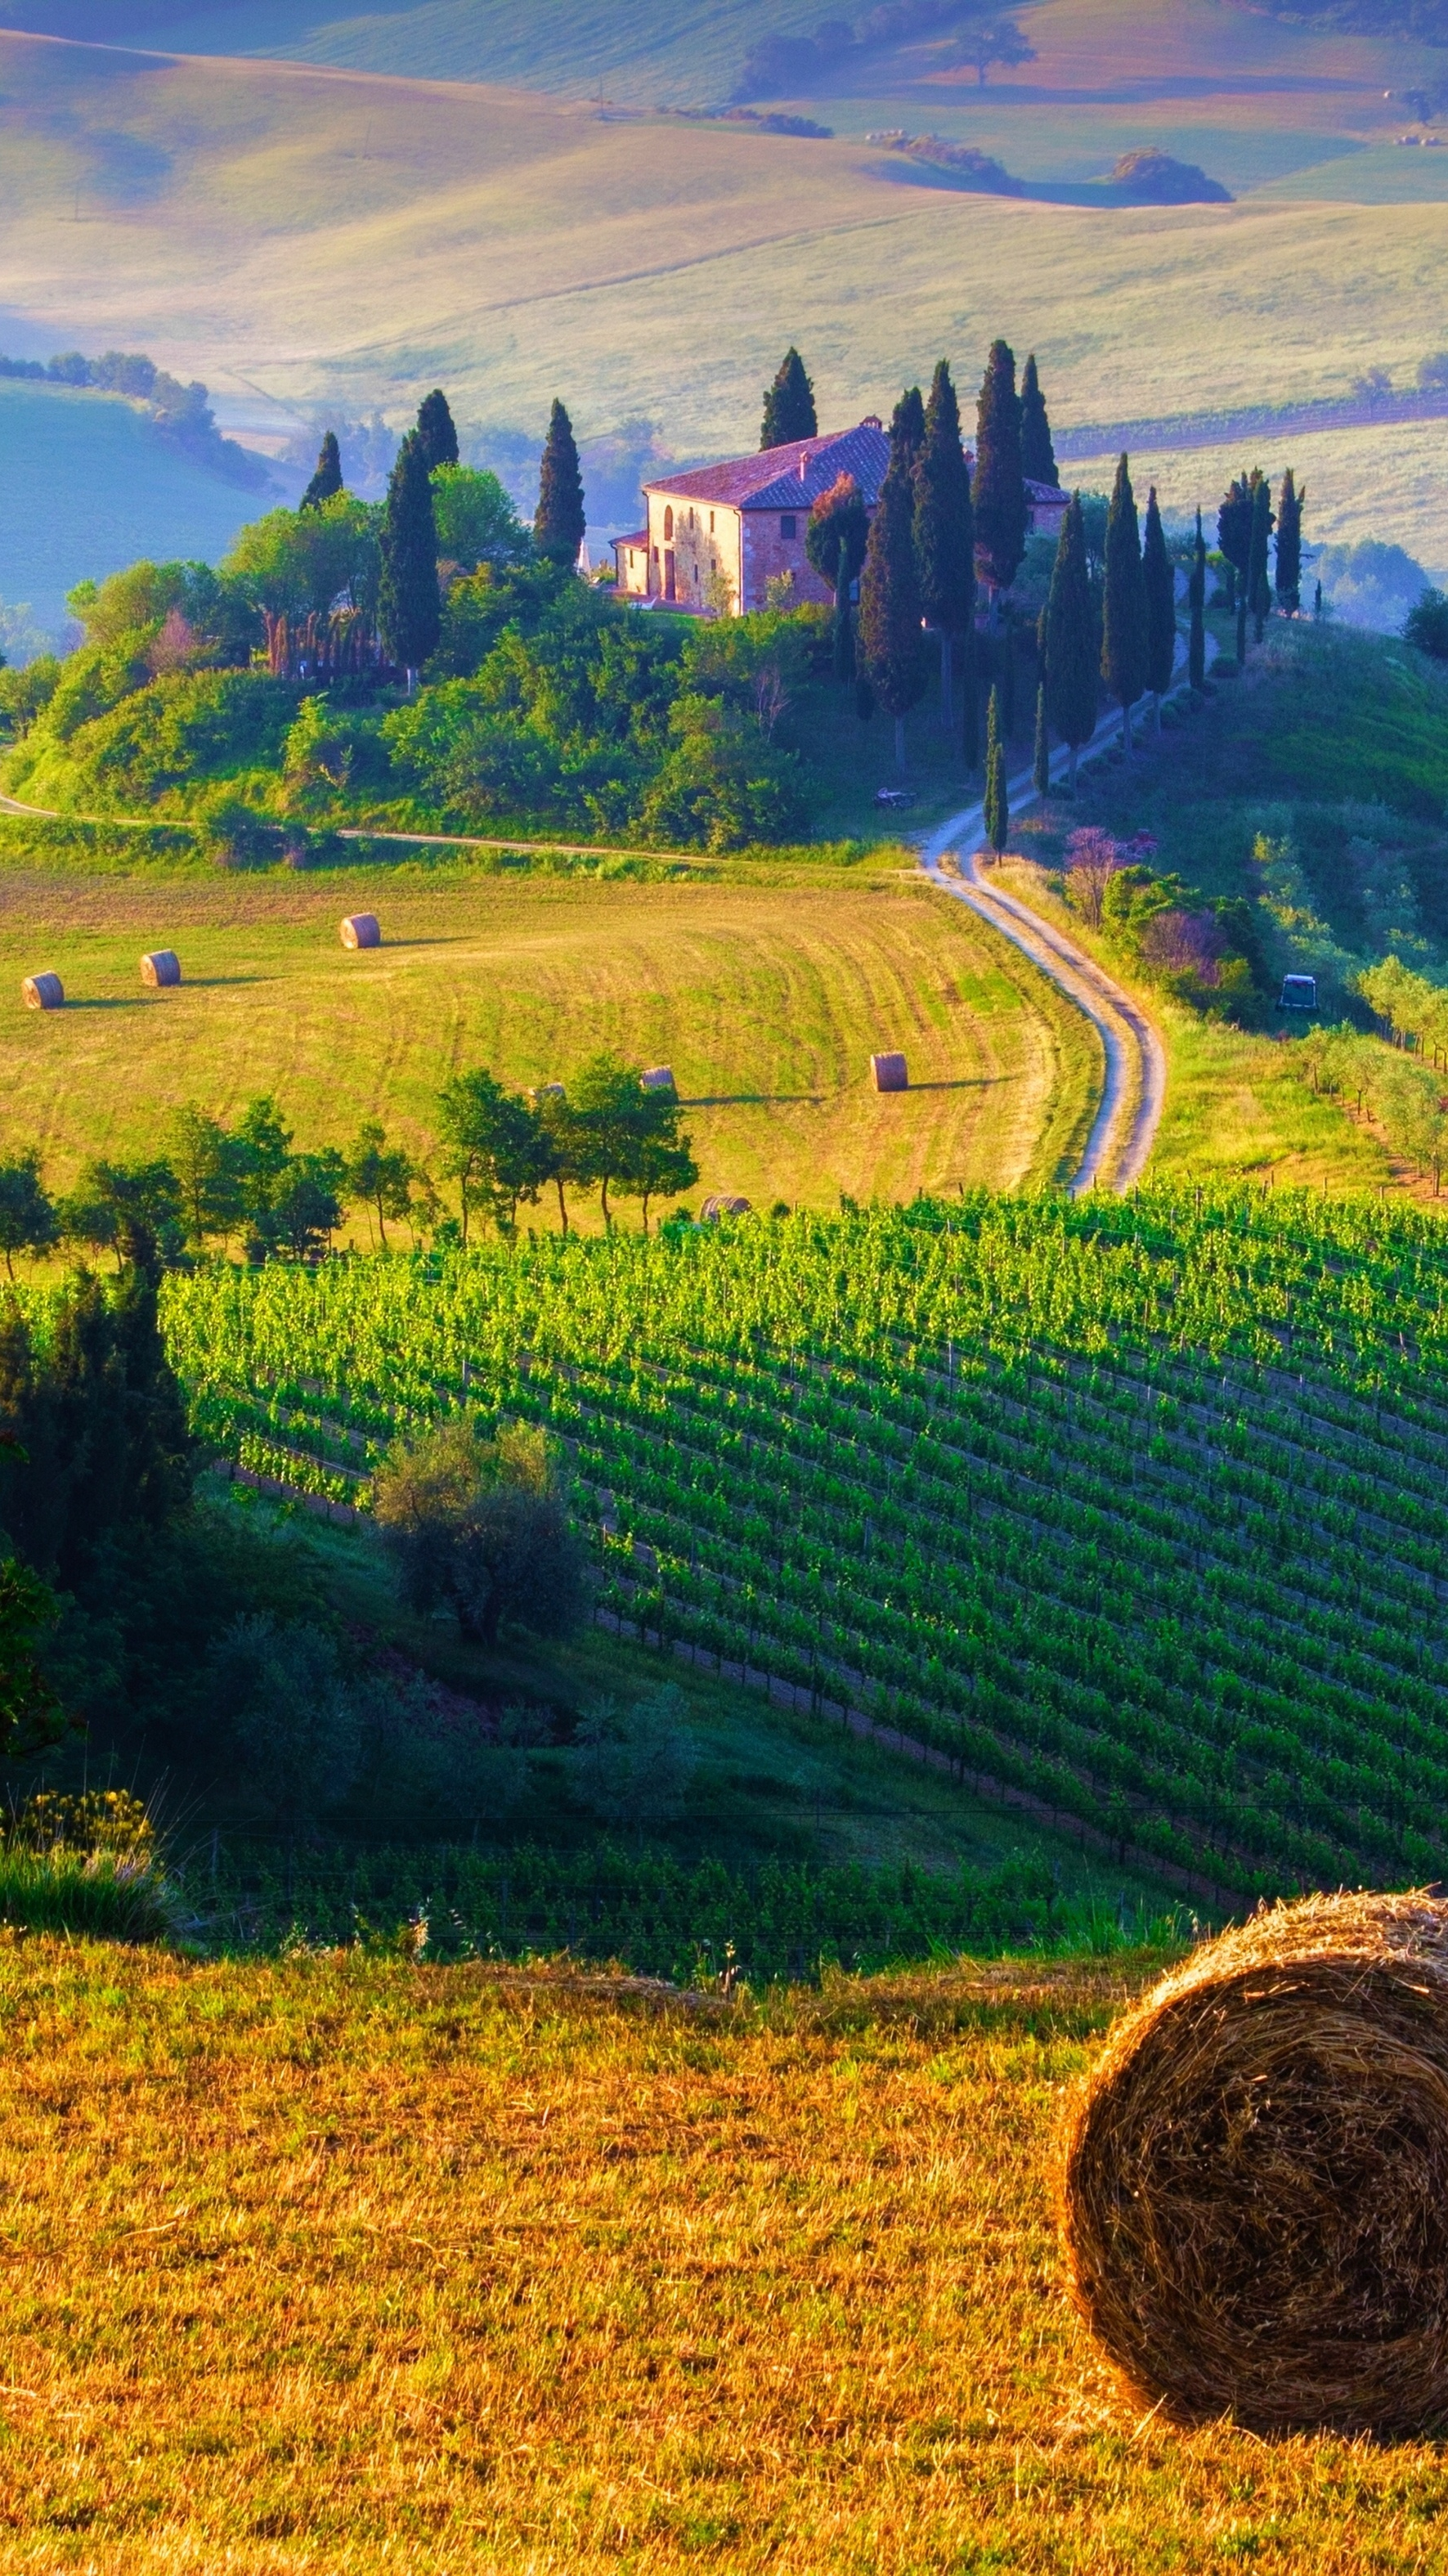 Amazing Wallpapers For Iphone 4 Tuscany Italy Landscape Iphone Wallpaper Iphone Wallpapers